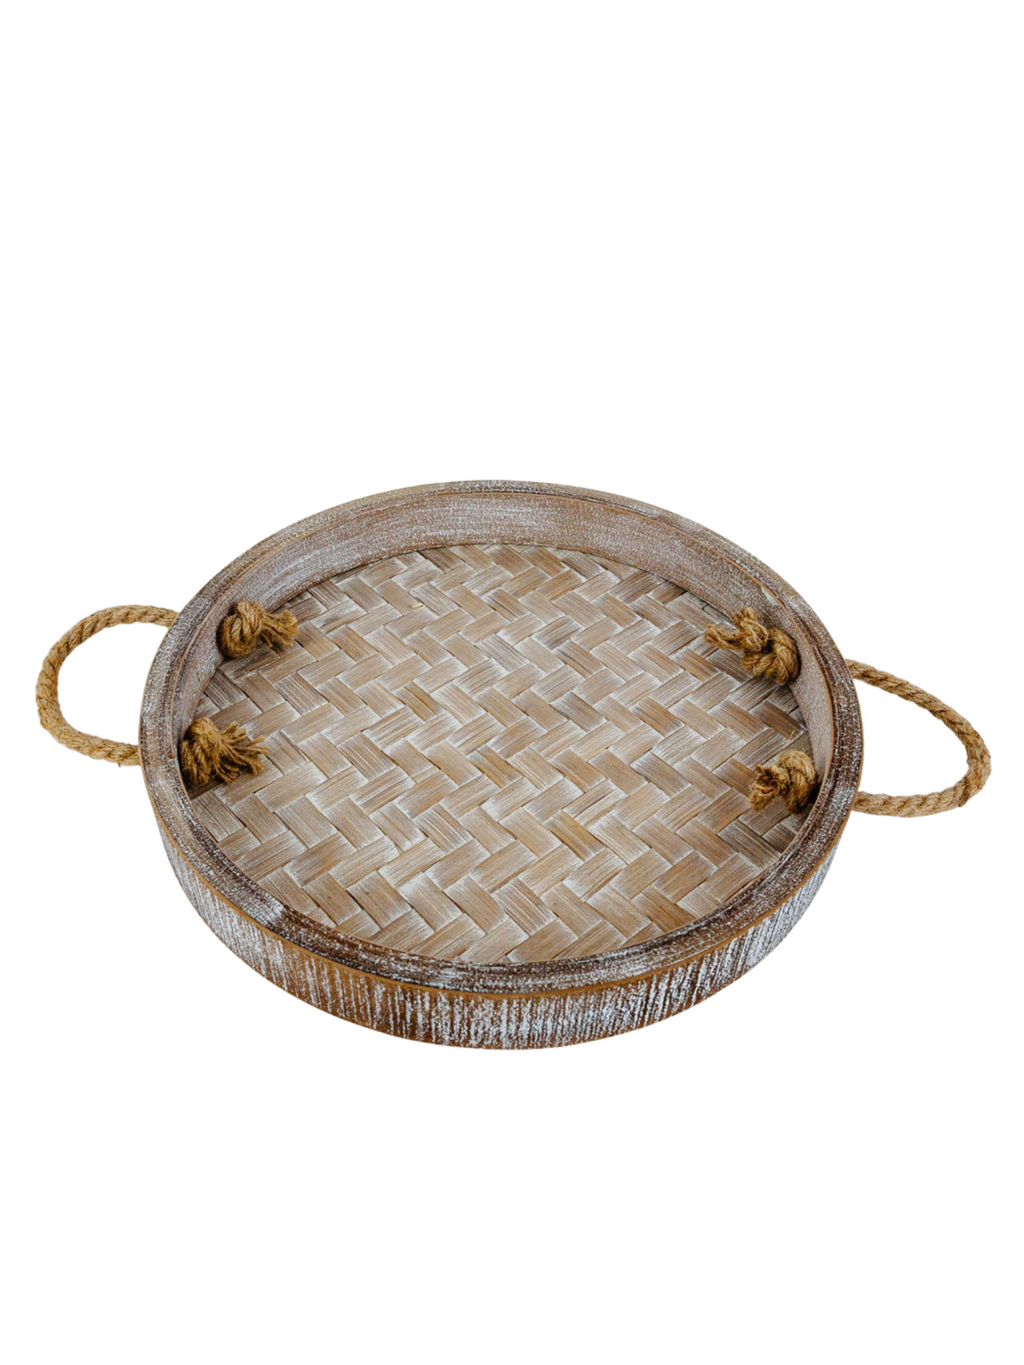 Bamboo Tray - Large